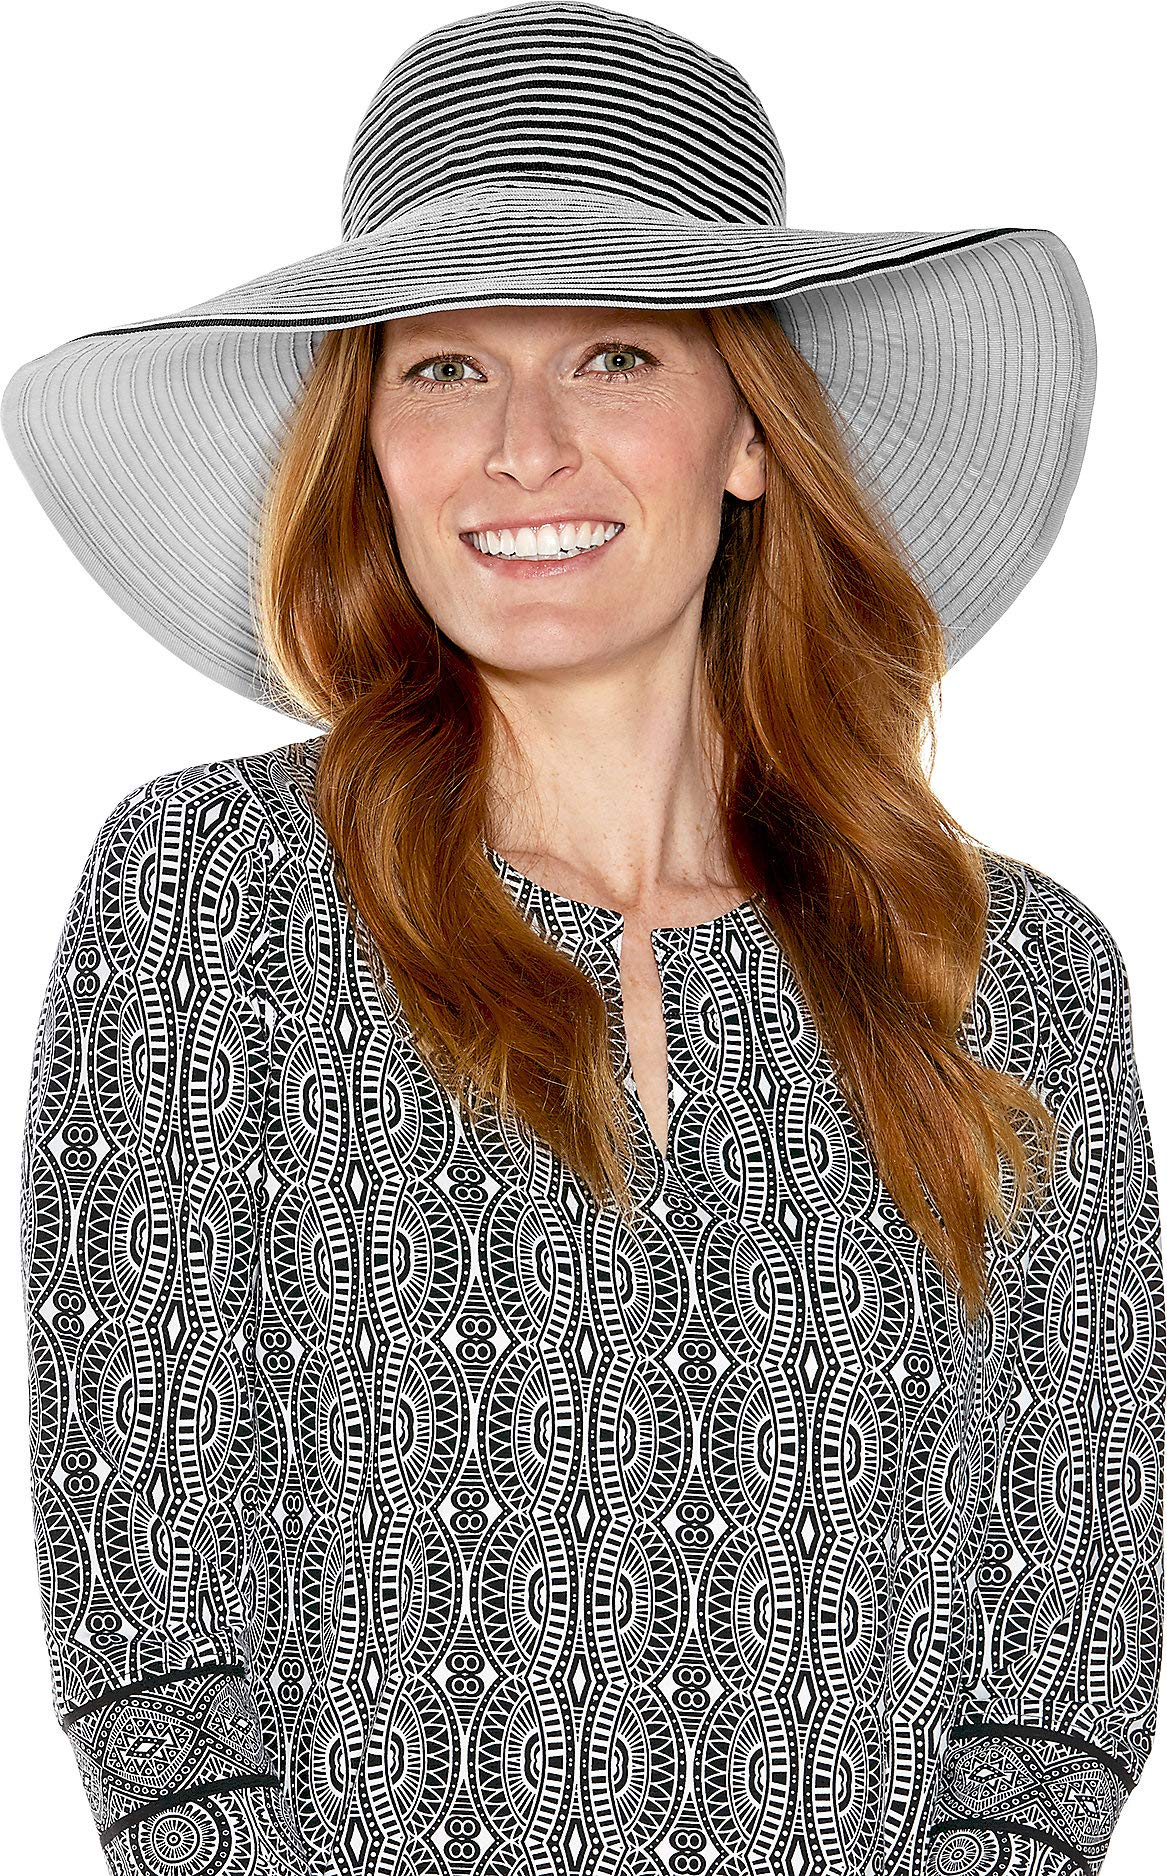 Coolibar UPF 50+ Women's Compact in A SNAP! Ginger Ribbon Hat - Sun Protective (One Size- Black/White w/Snap)